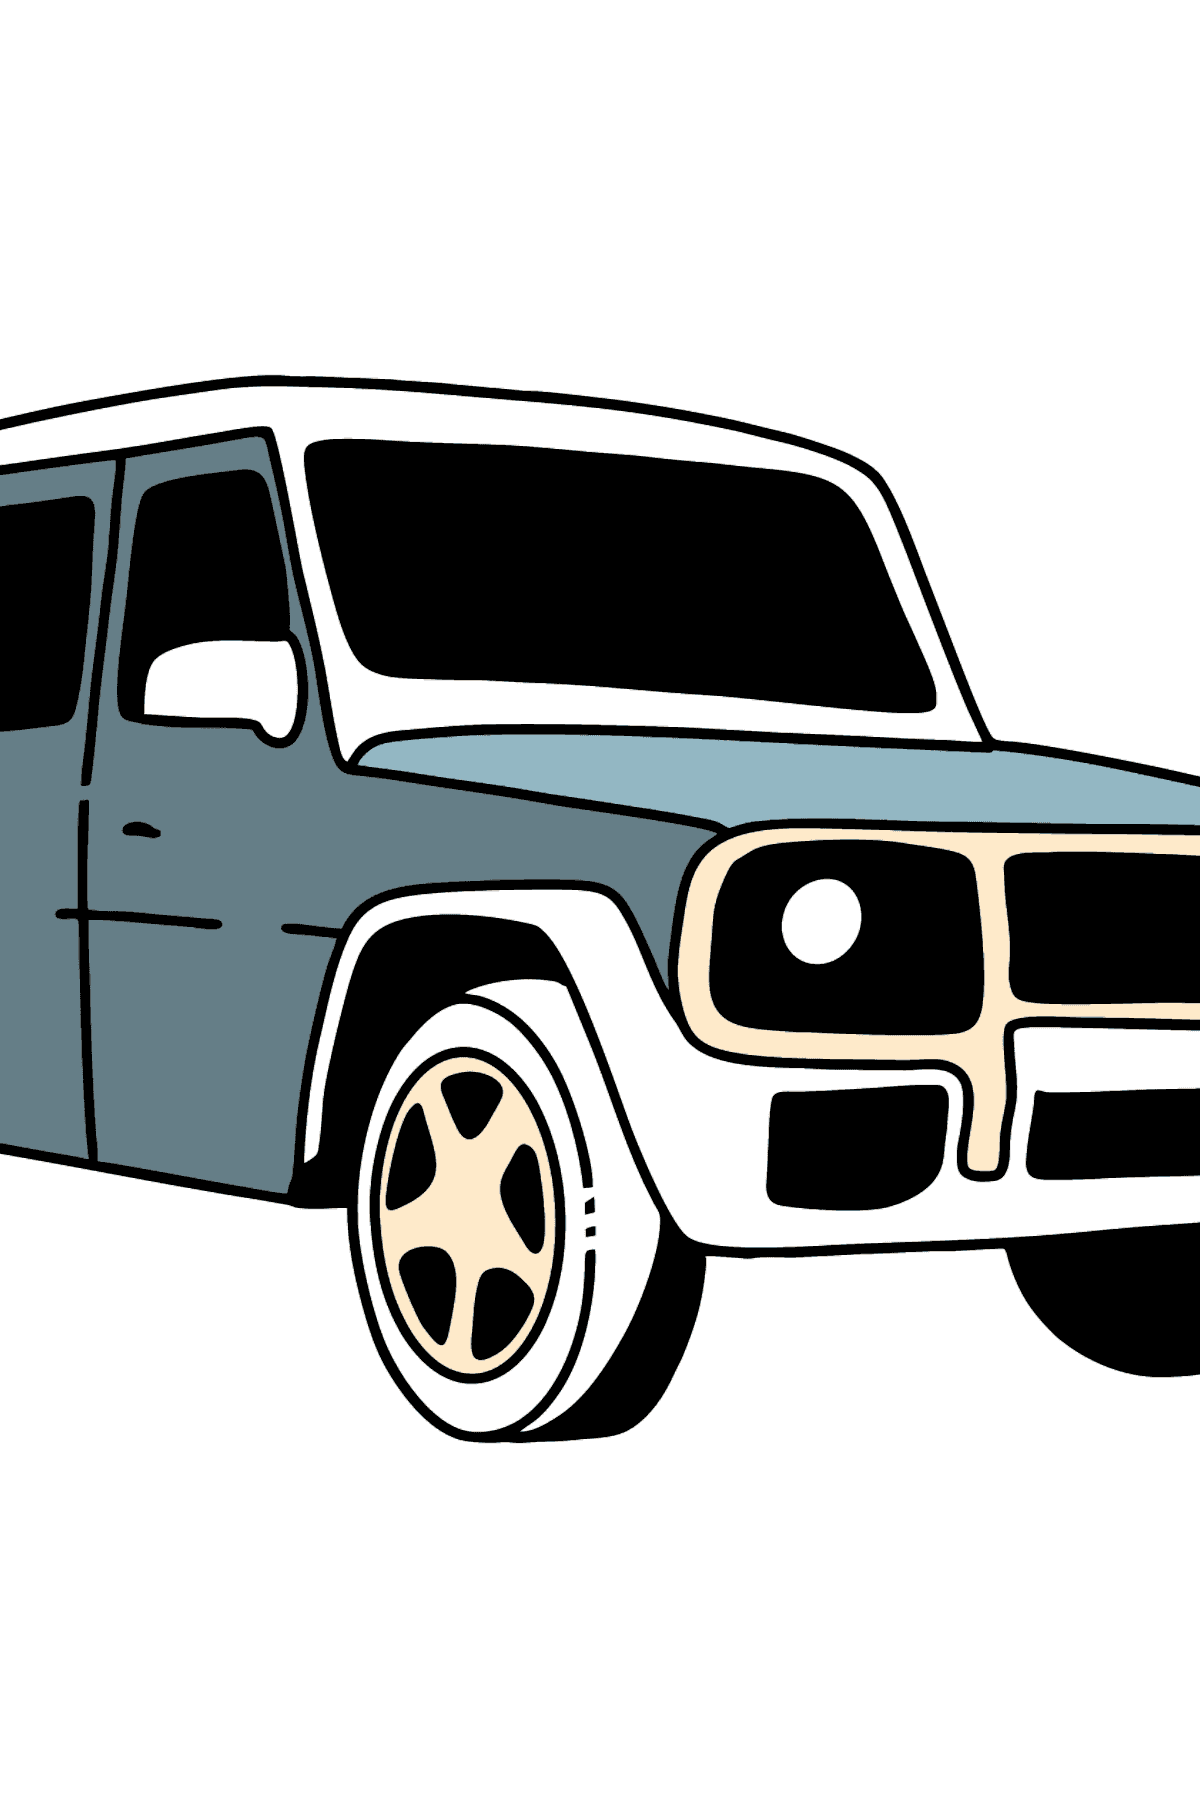 Mercedes-Benz G-Class SUV coloring page - Coloring Pages for Kids